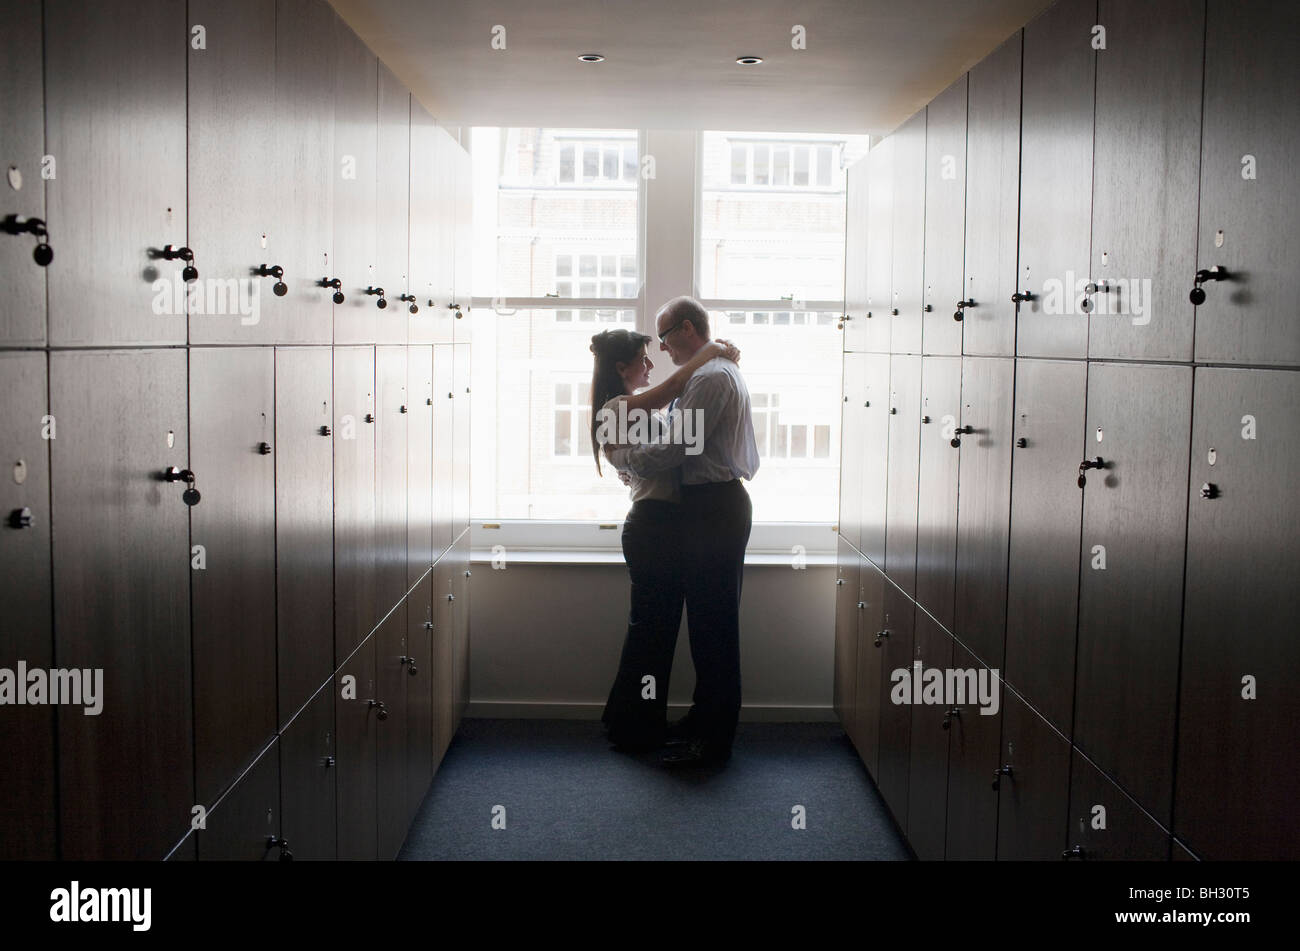 Couple office workers in locker room - Stock Image